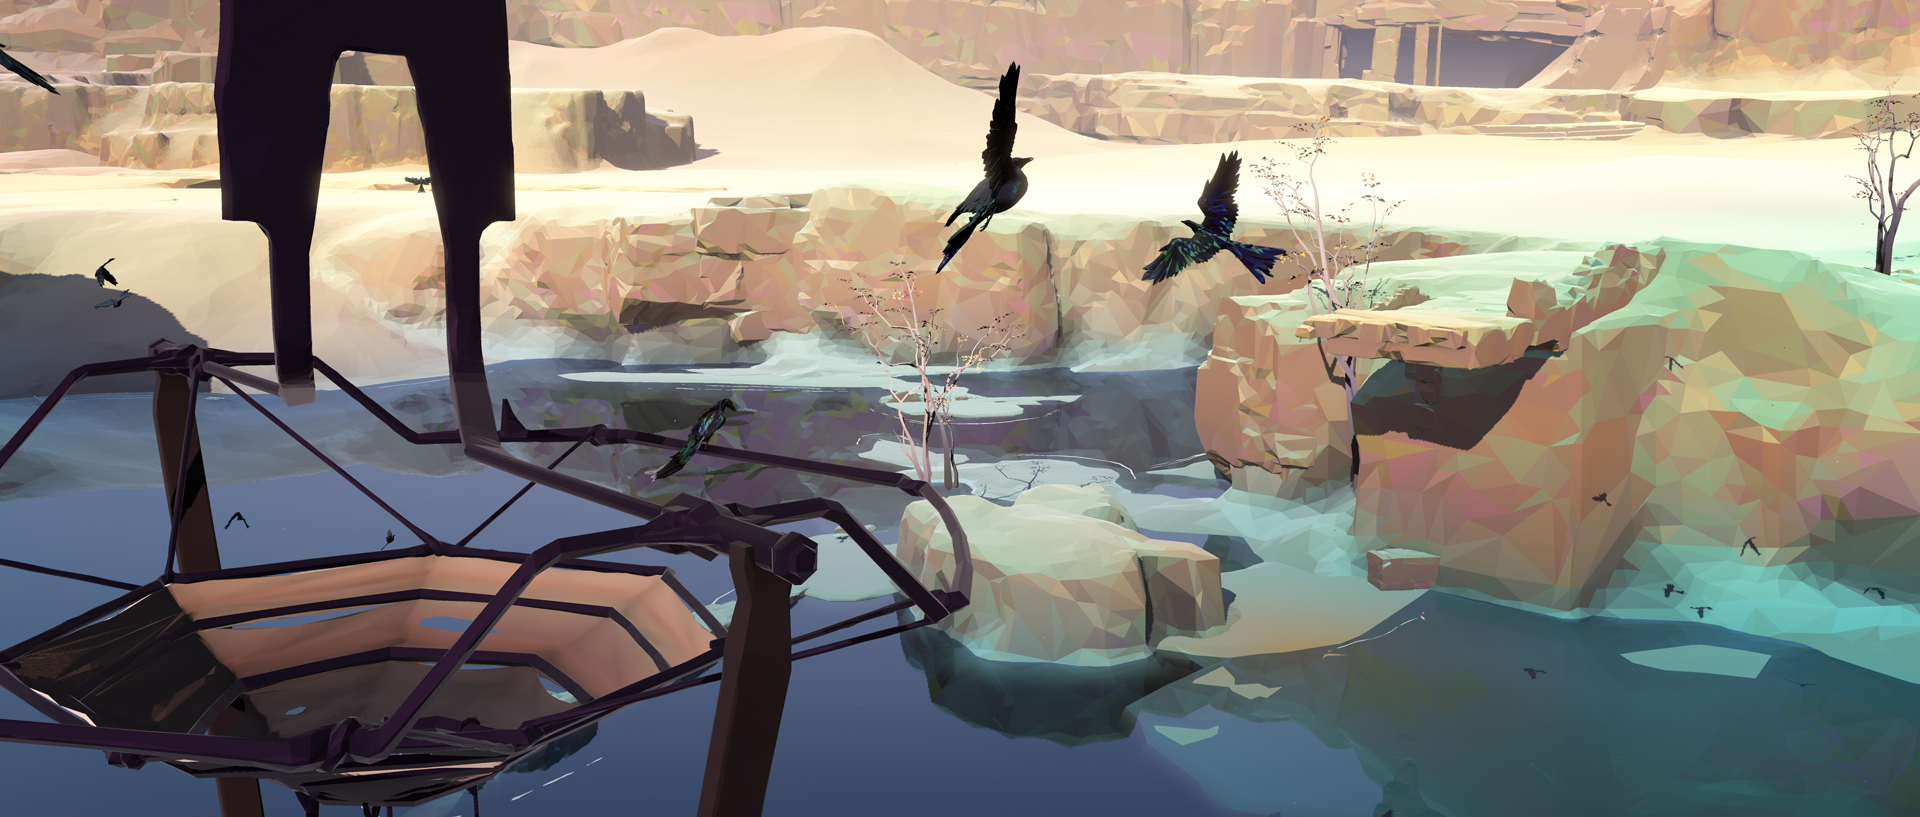 Highly anticipated adventure Vane out on PS4